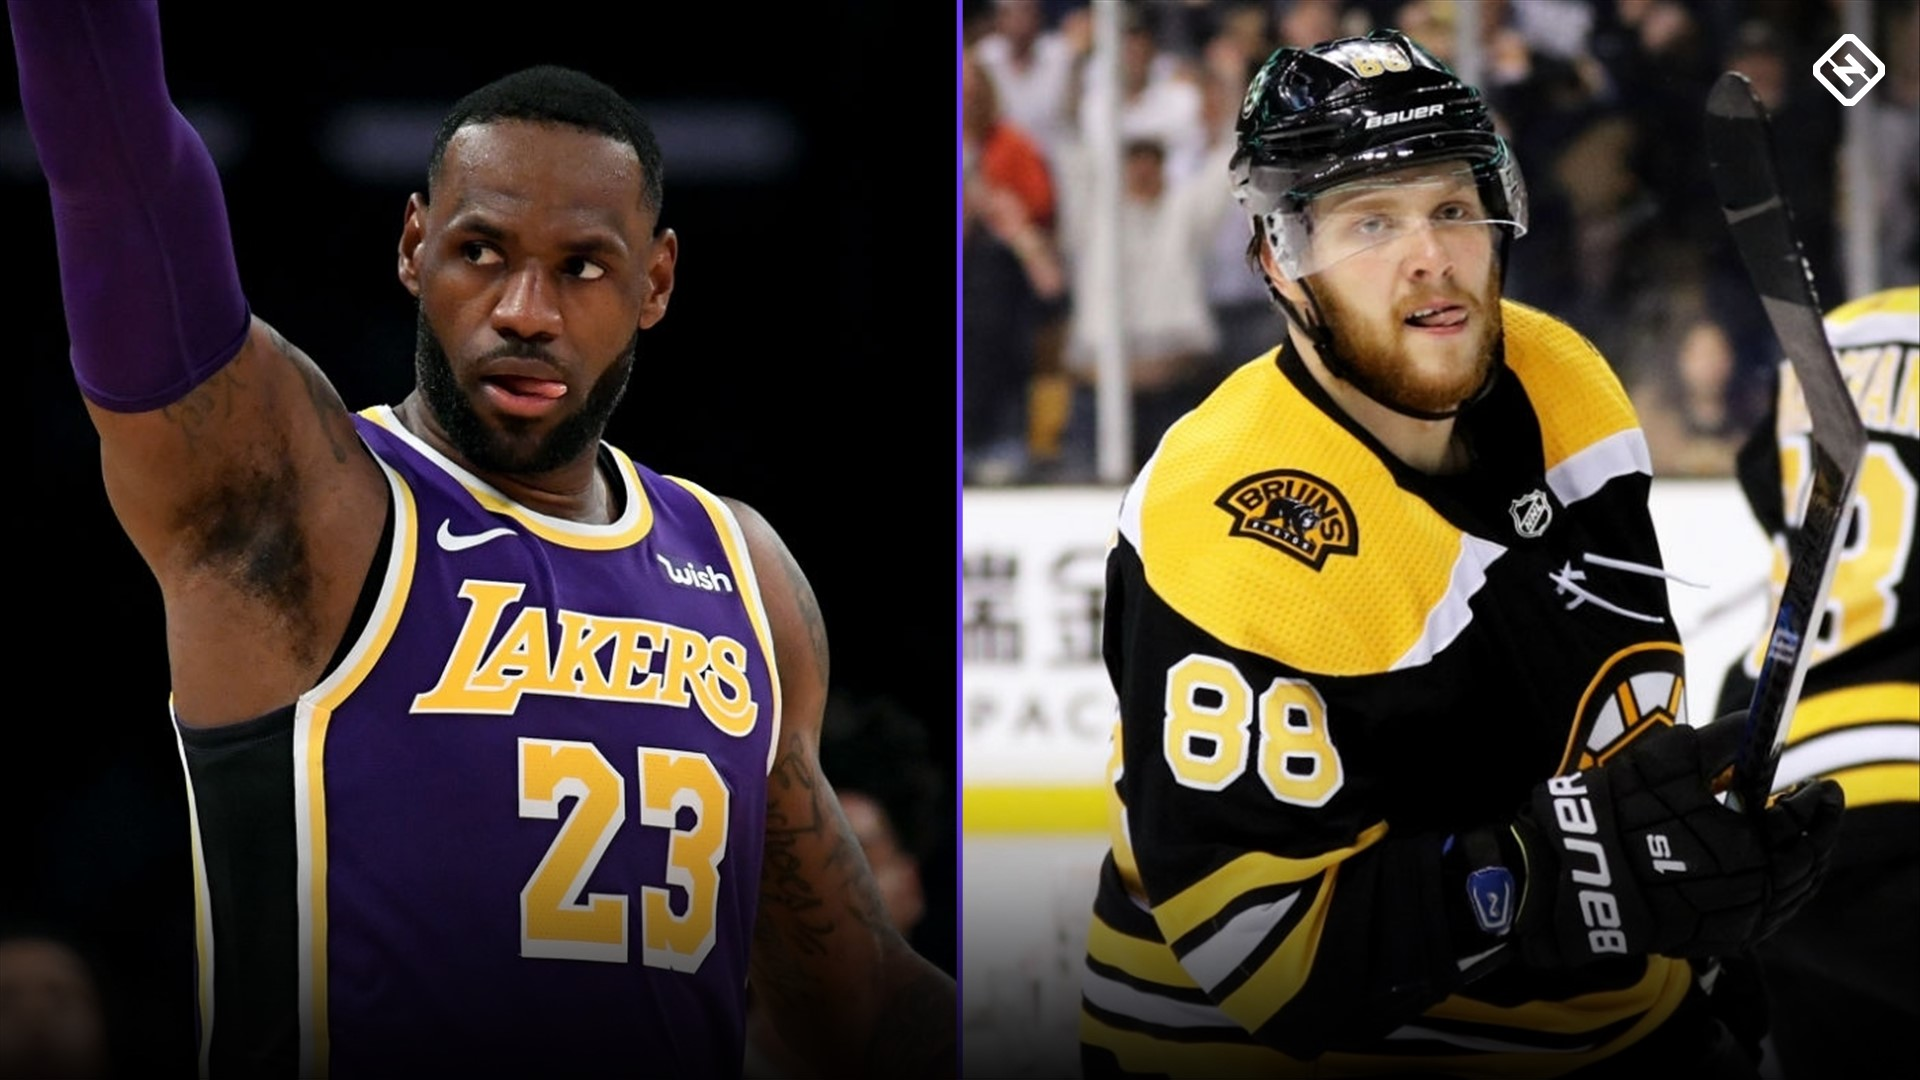 Memo to the NBA, NHL: Quitting the current season is not an option